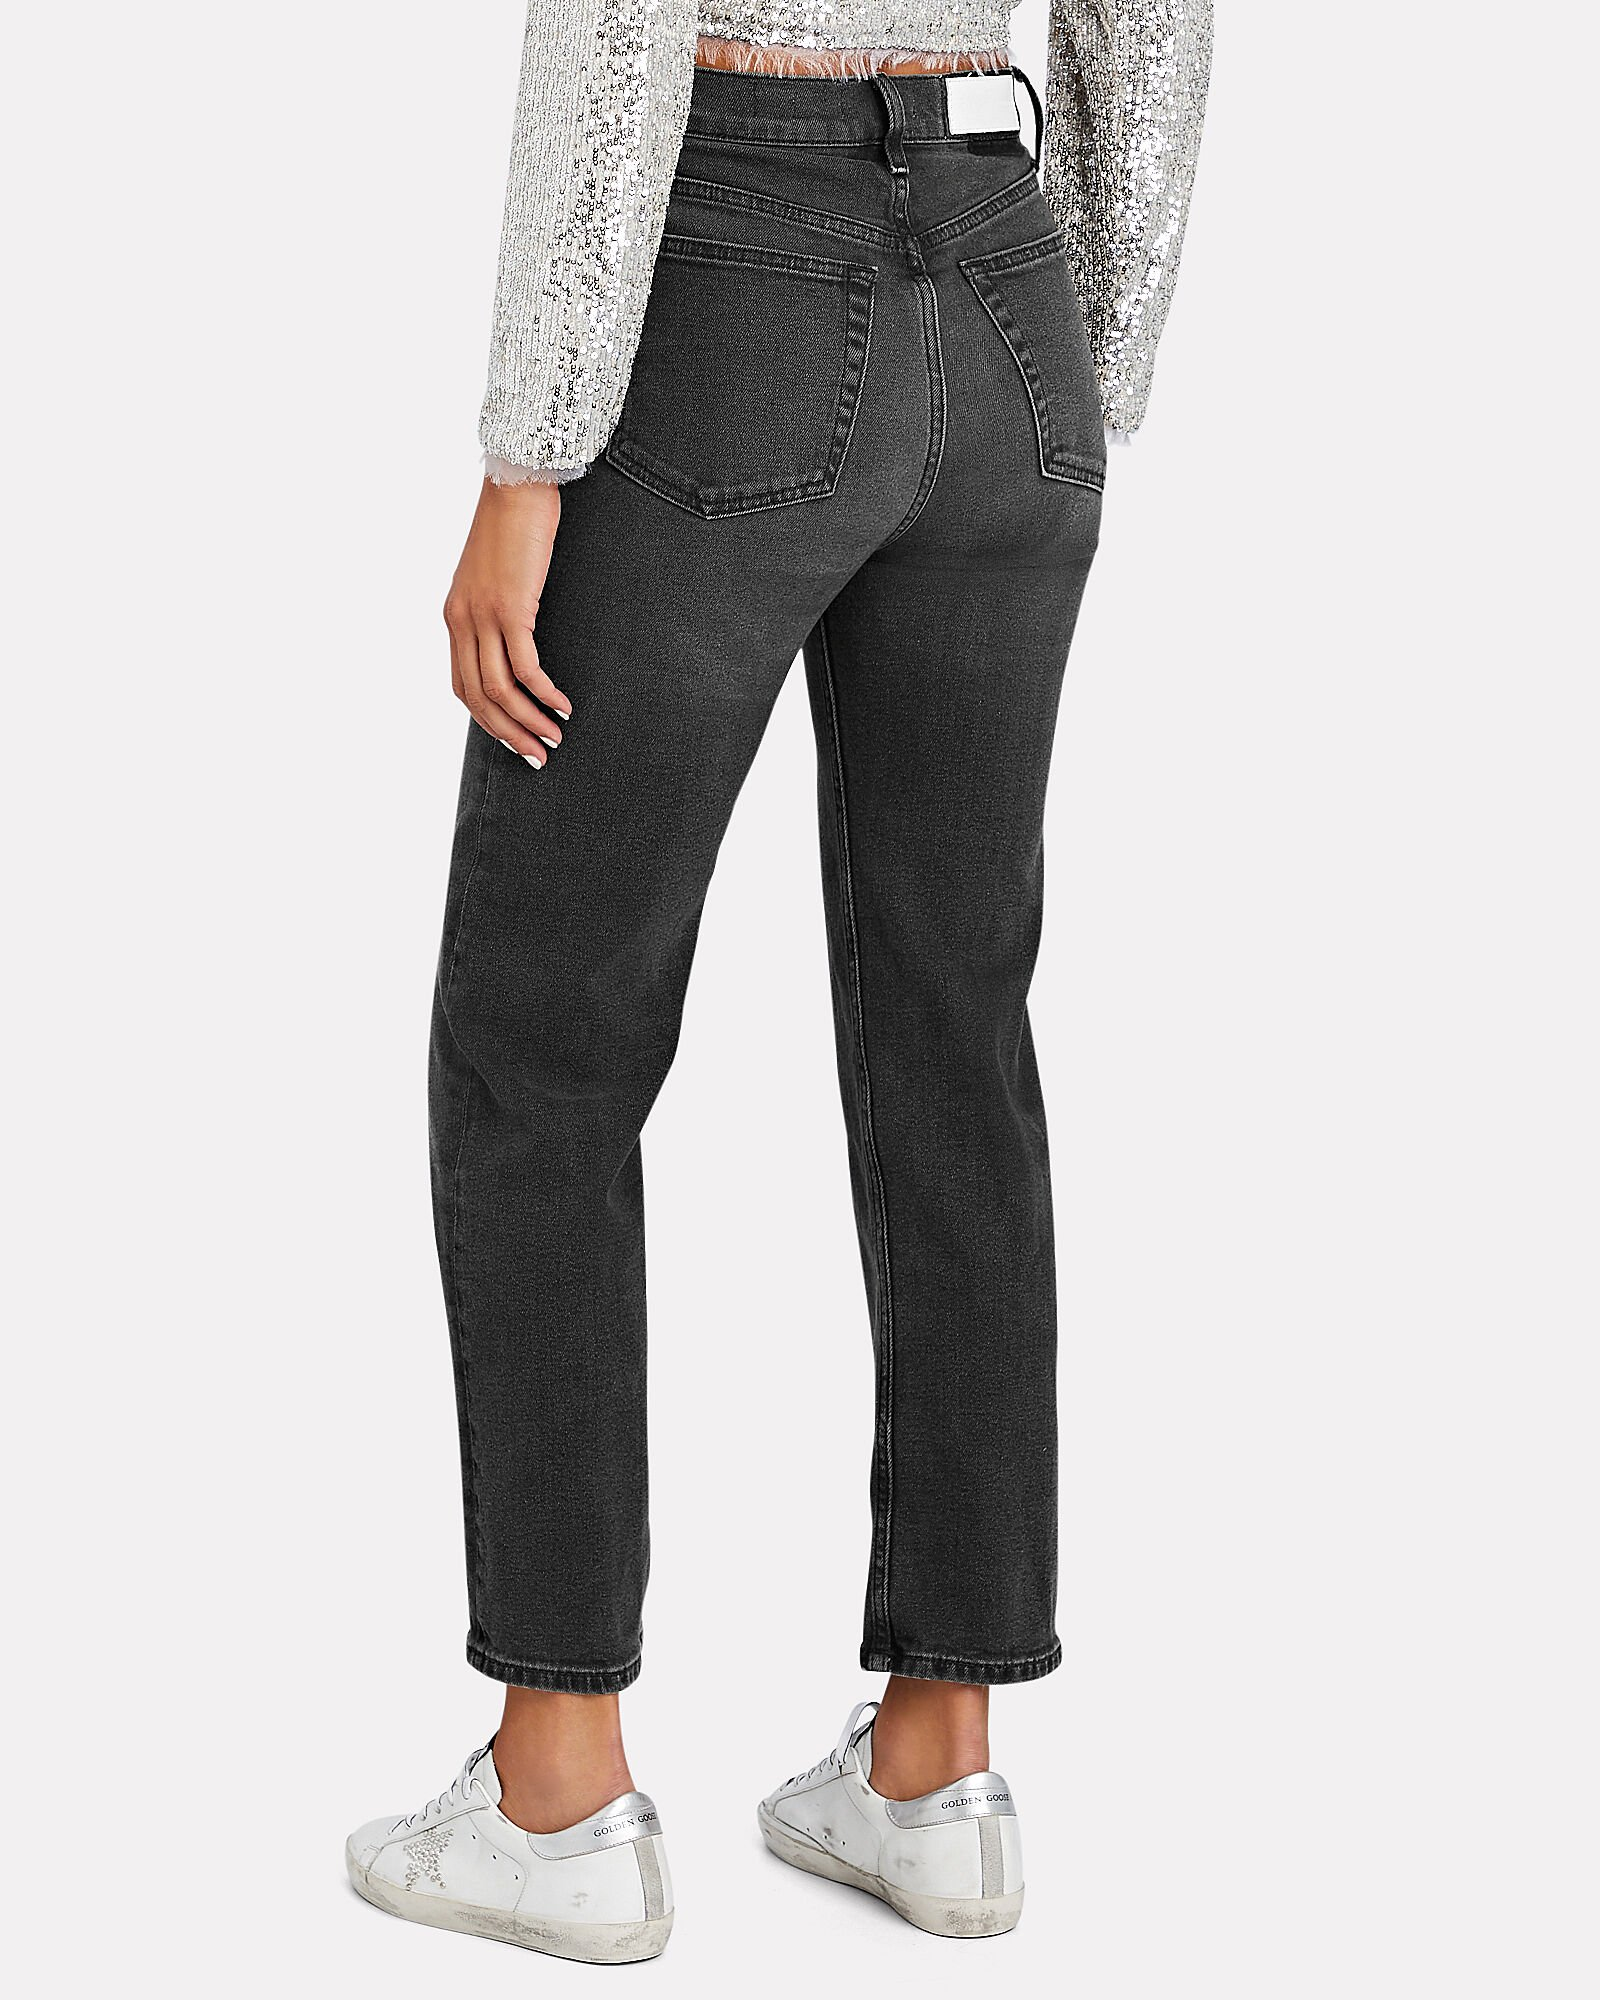 70s High-Rise Stove Pipe Jeans, BLACK, hi-res